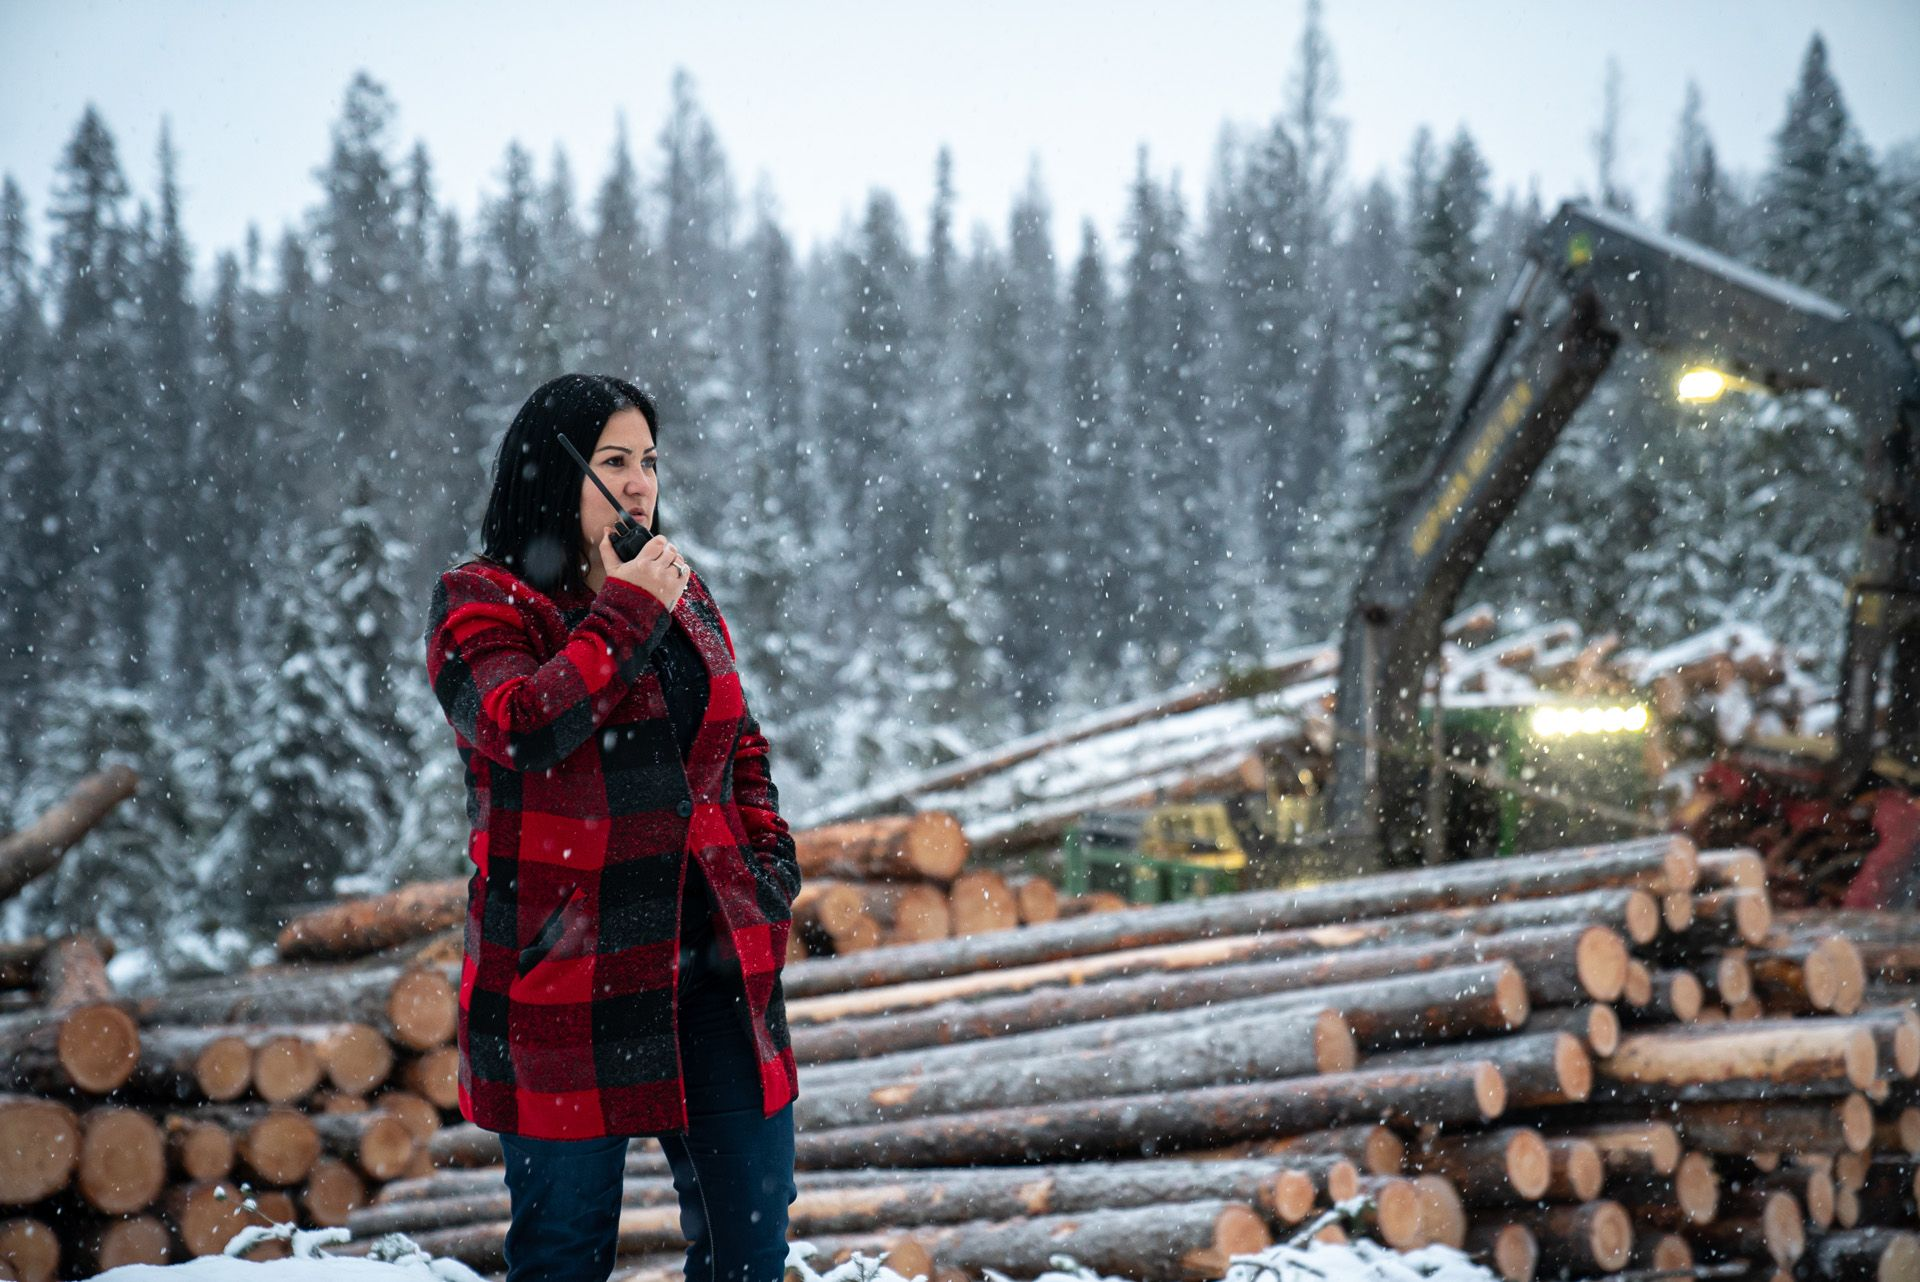 woman in plaid coat talking in a walkie talkie among cut trees by Bruno Florin for BDC Beyond Business with Cossette